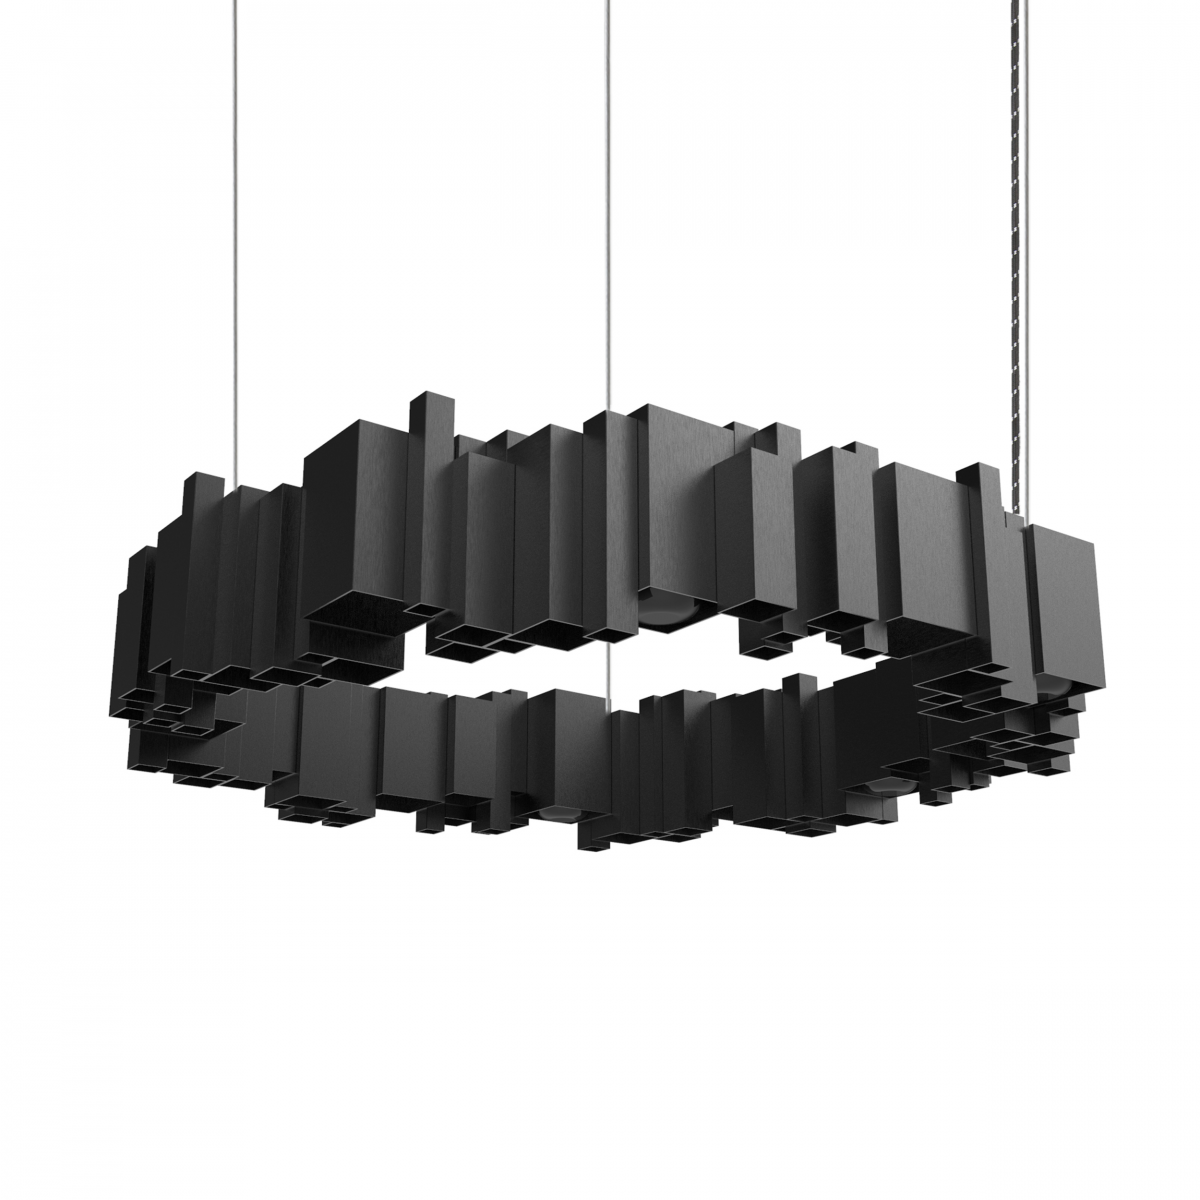 JSPR Cityscapes Urban OFF Black Zwart Lamp Project